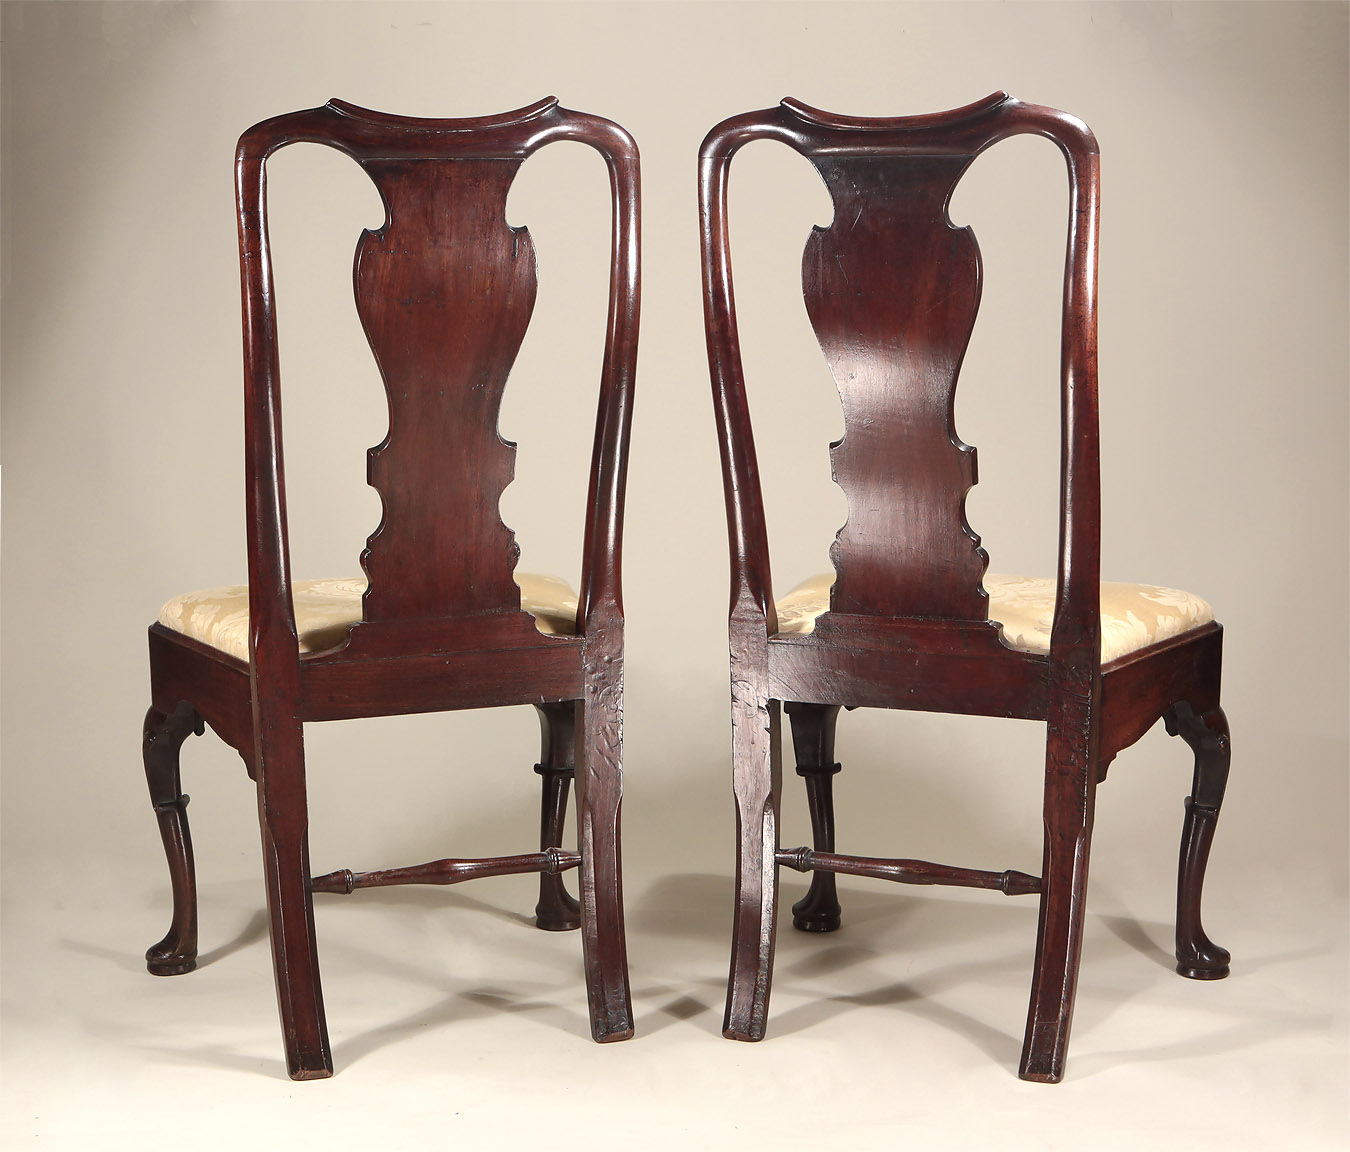 Pair George I / II Cuban Mahogany Side Chairs, c1725-30, showing the back side